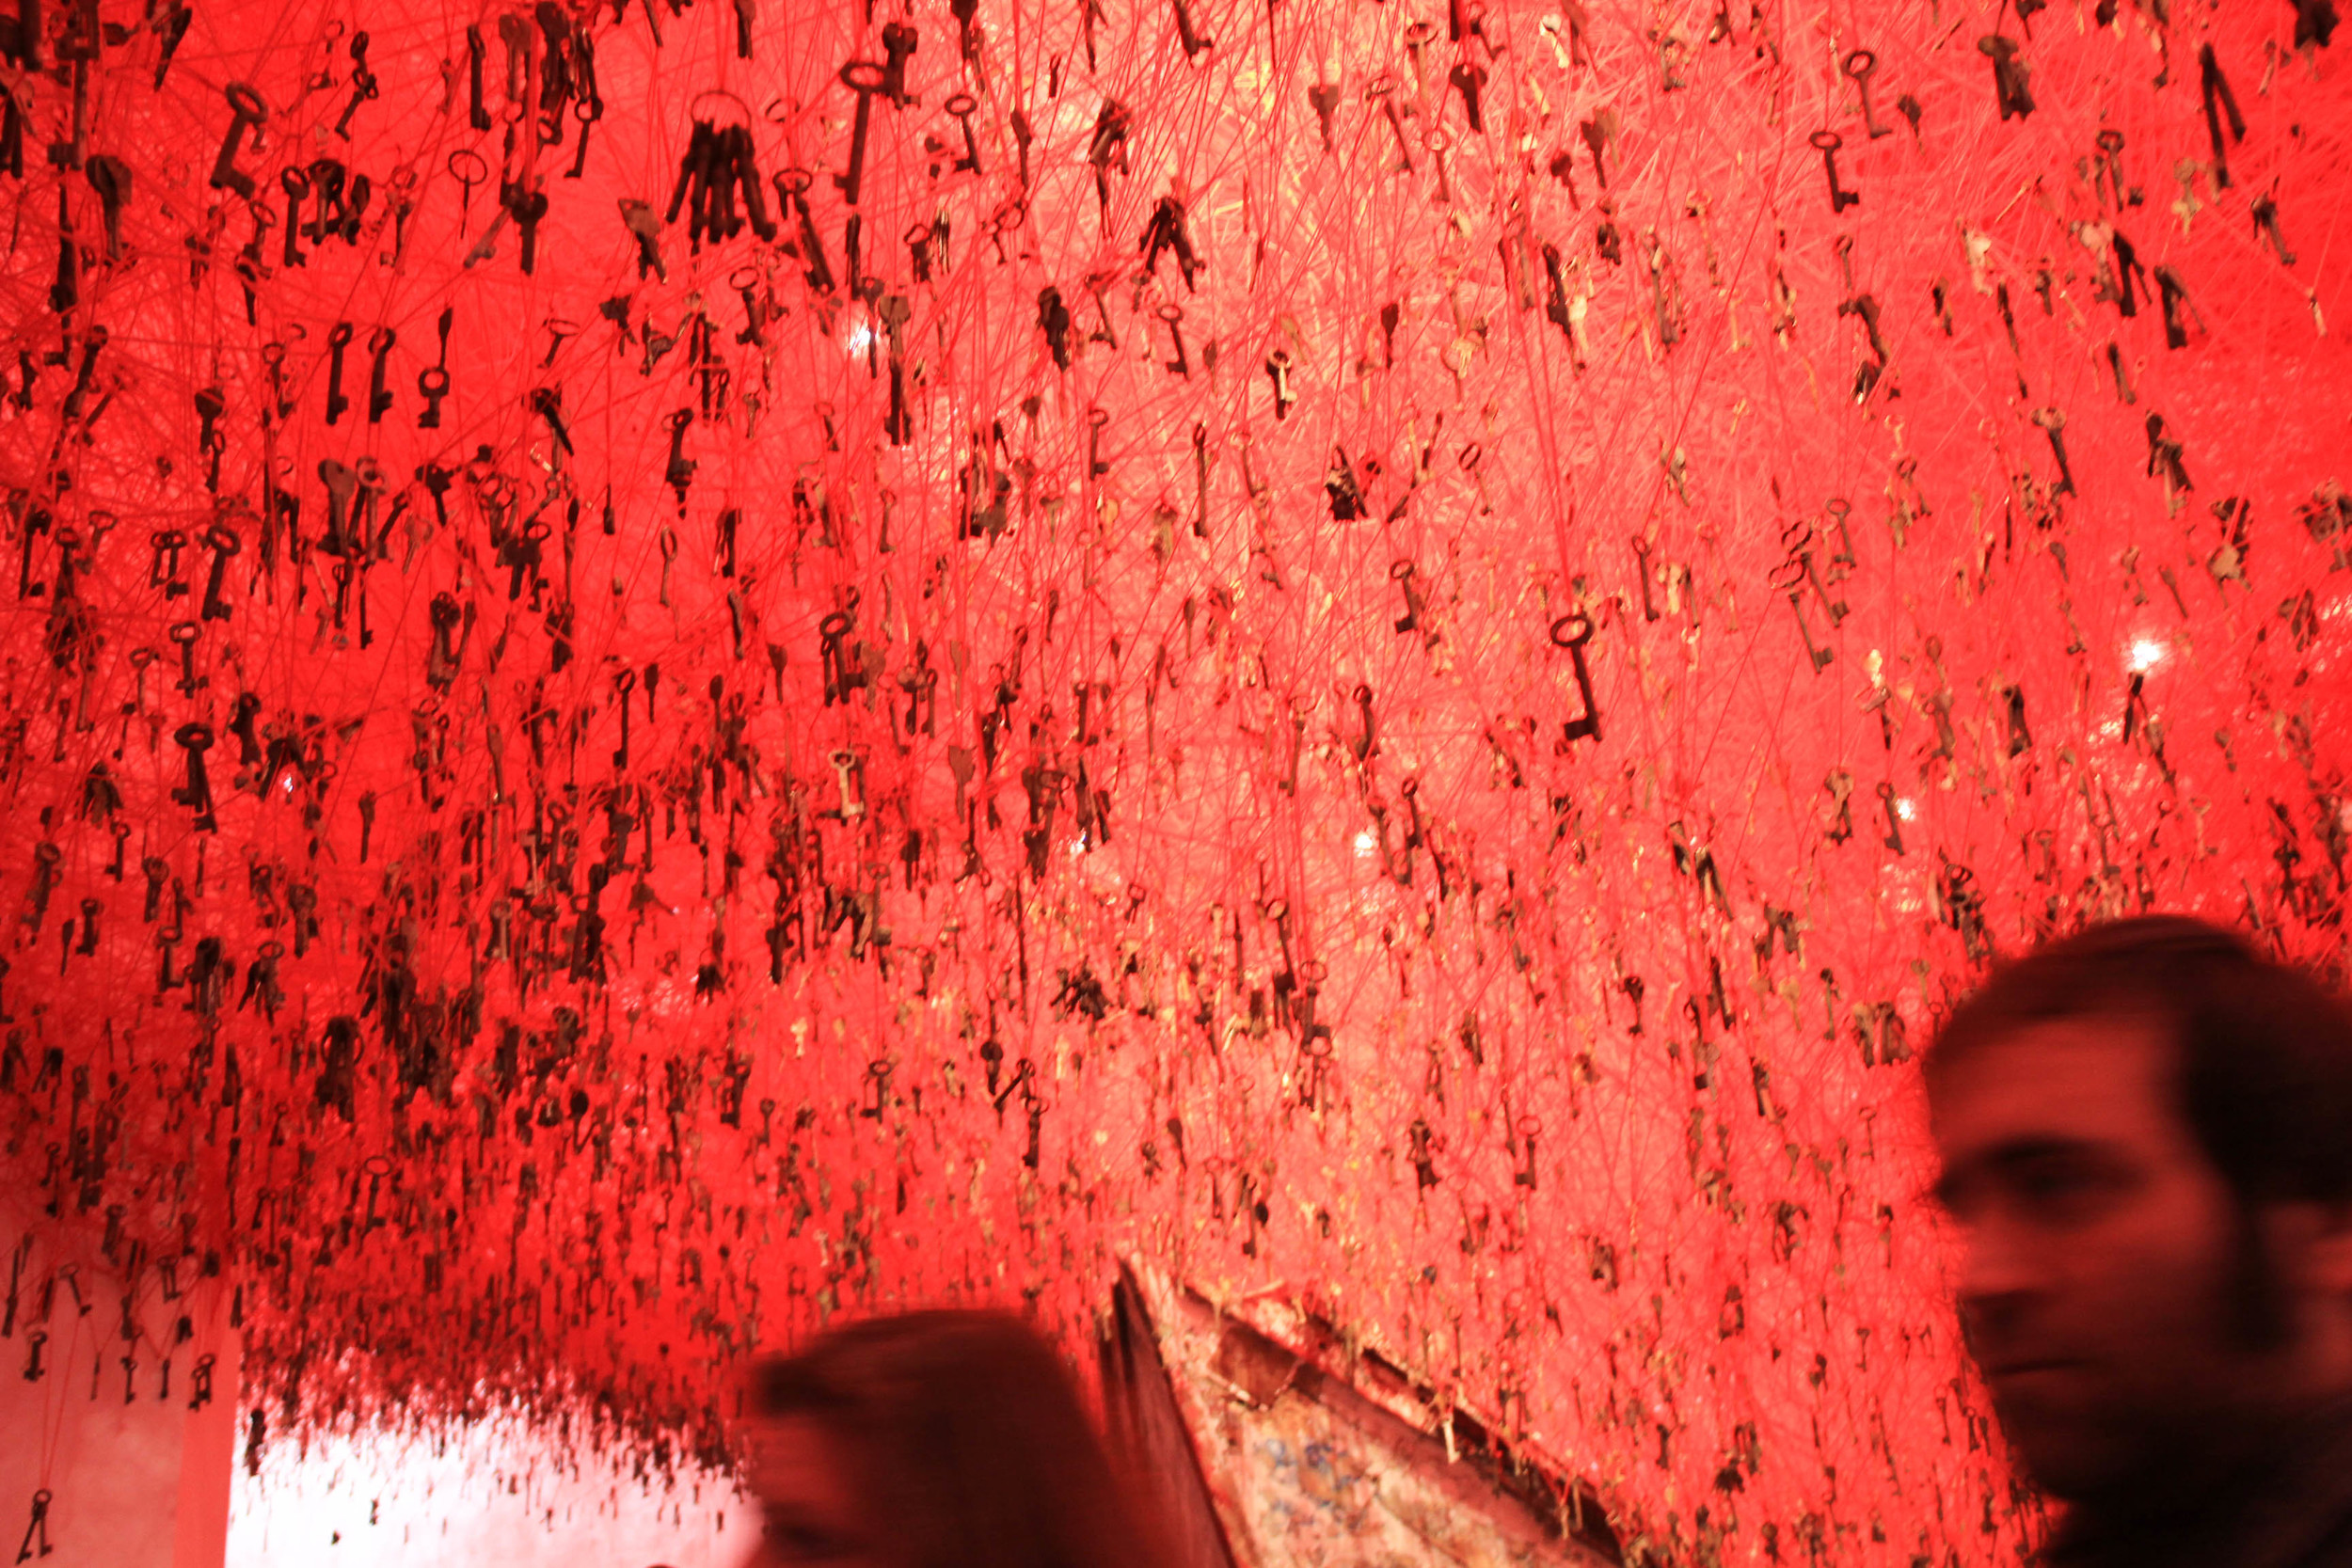 The Key in the Hand by Chiharu Shiota.